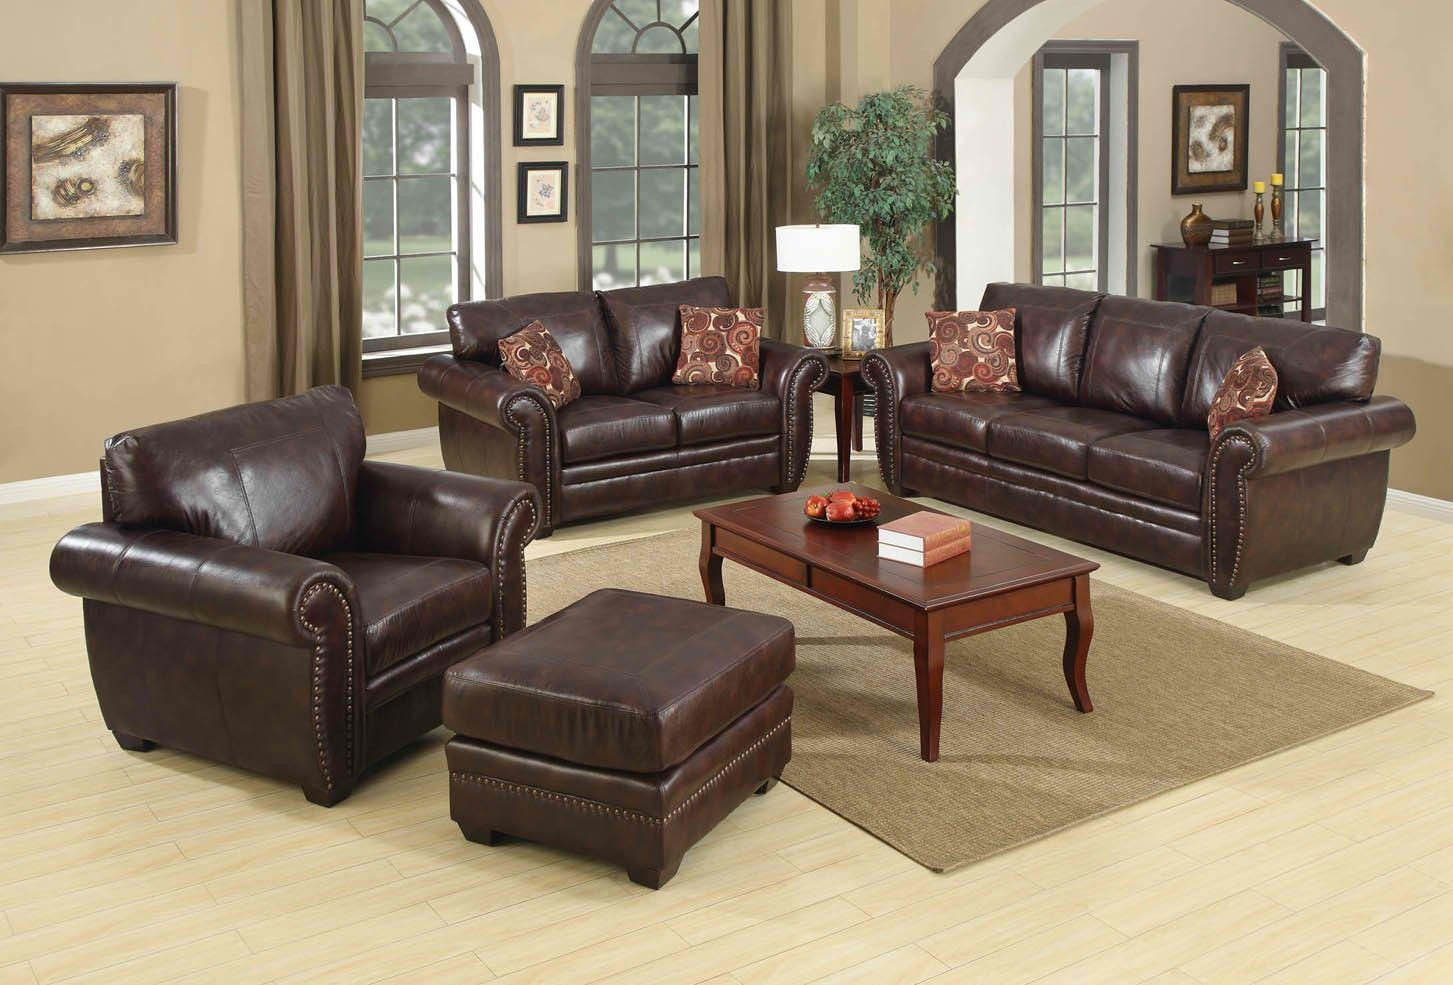 Wall Colors For Brown Leather Furniture Wall Colors For Brown Furniture List 17 Ideas In Best